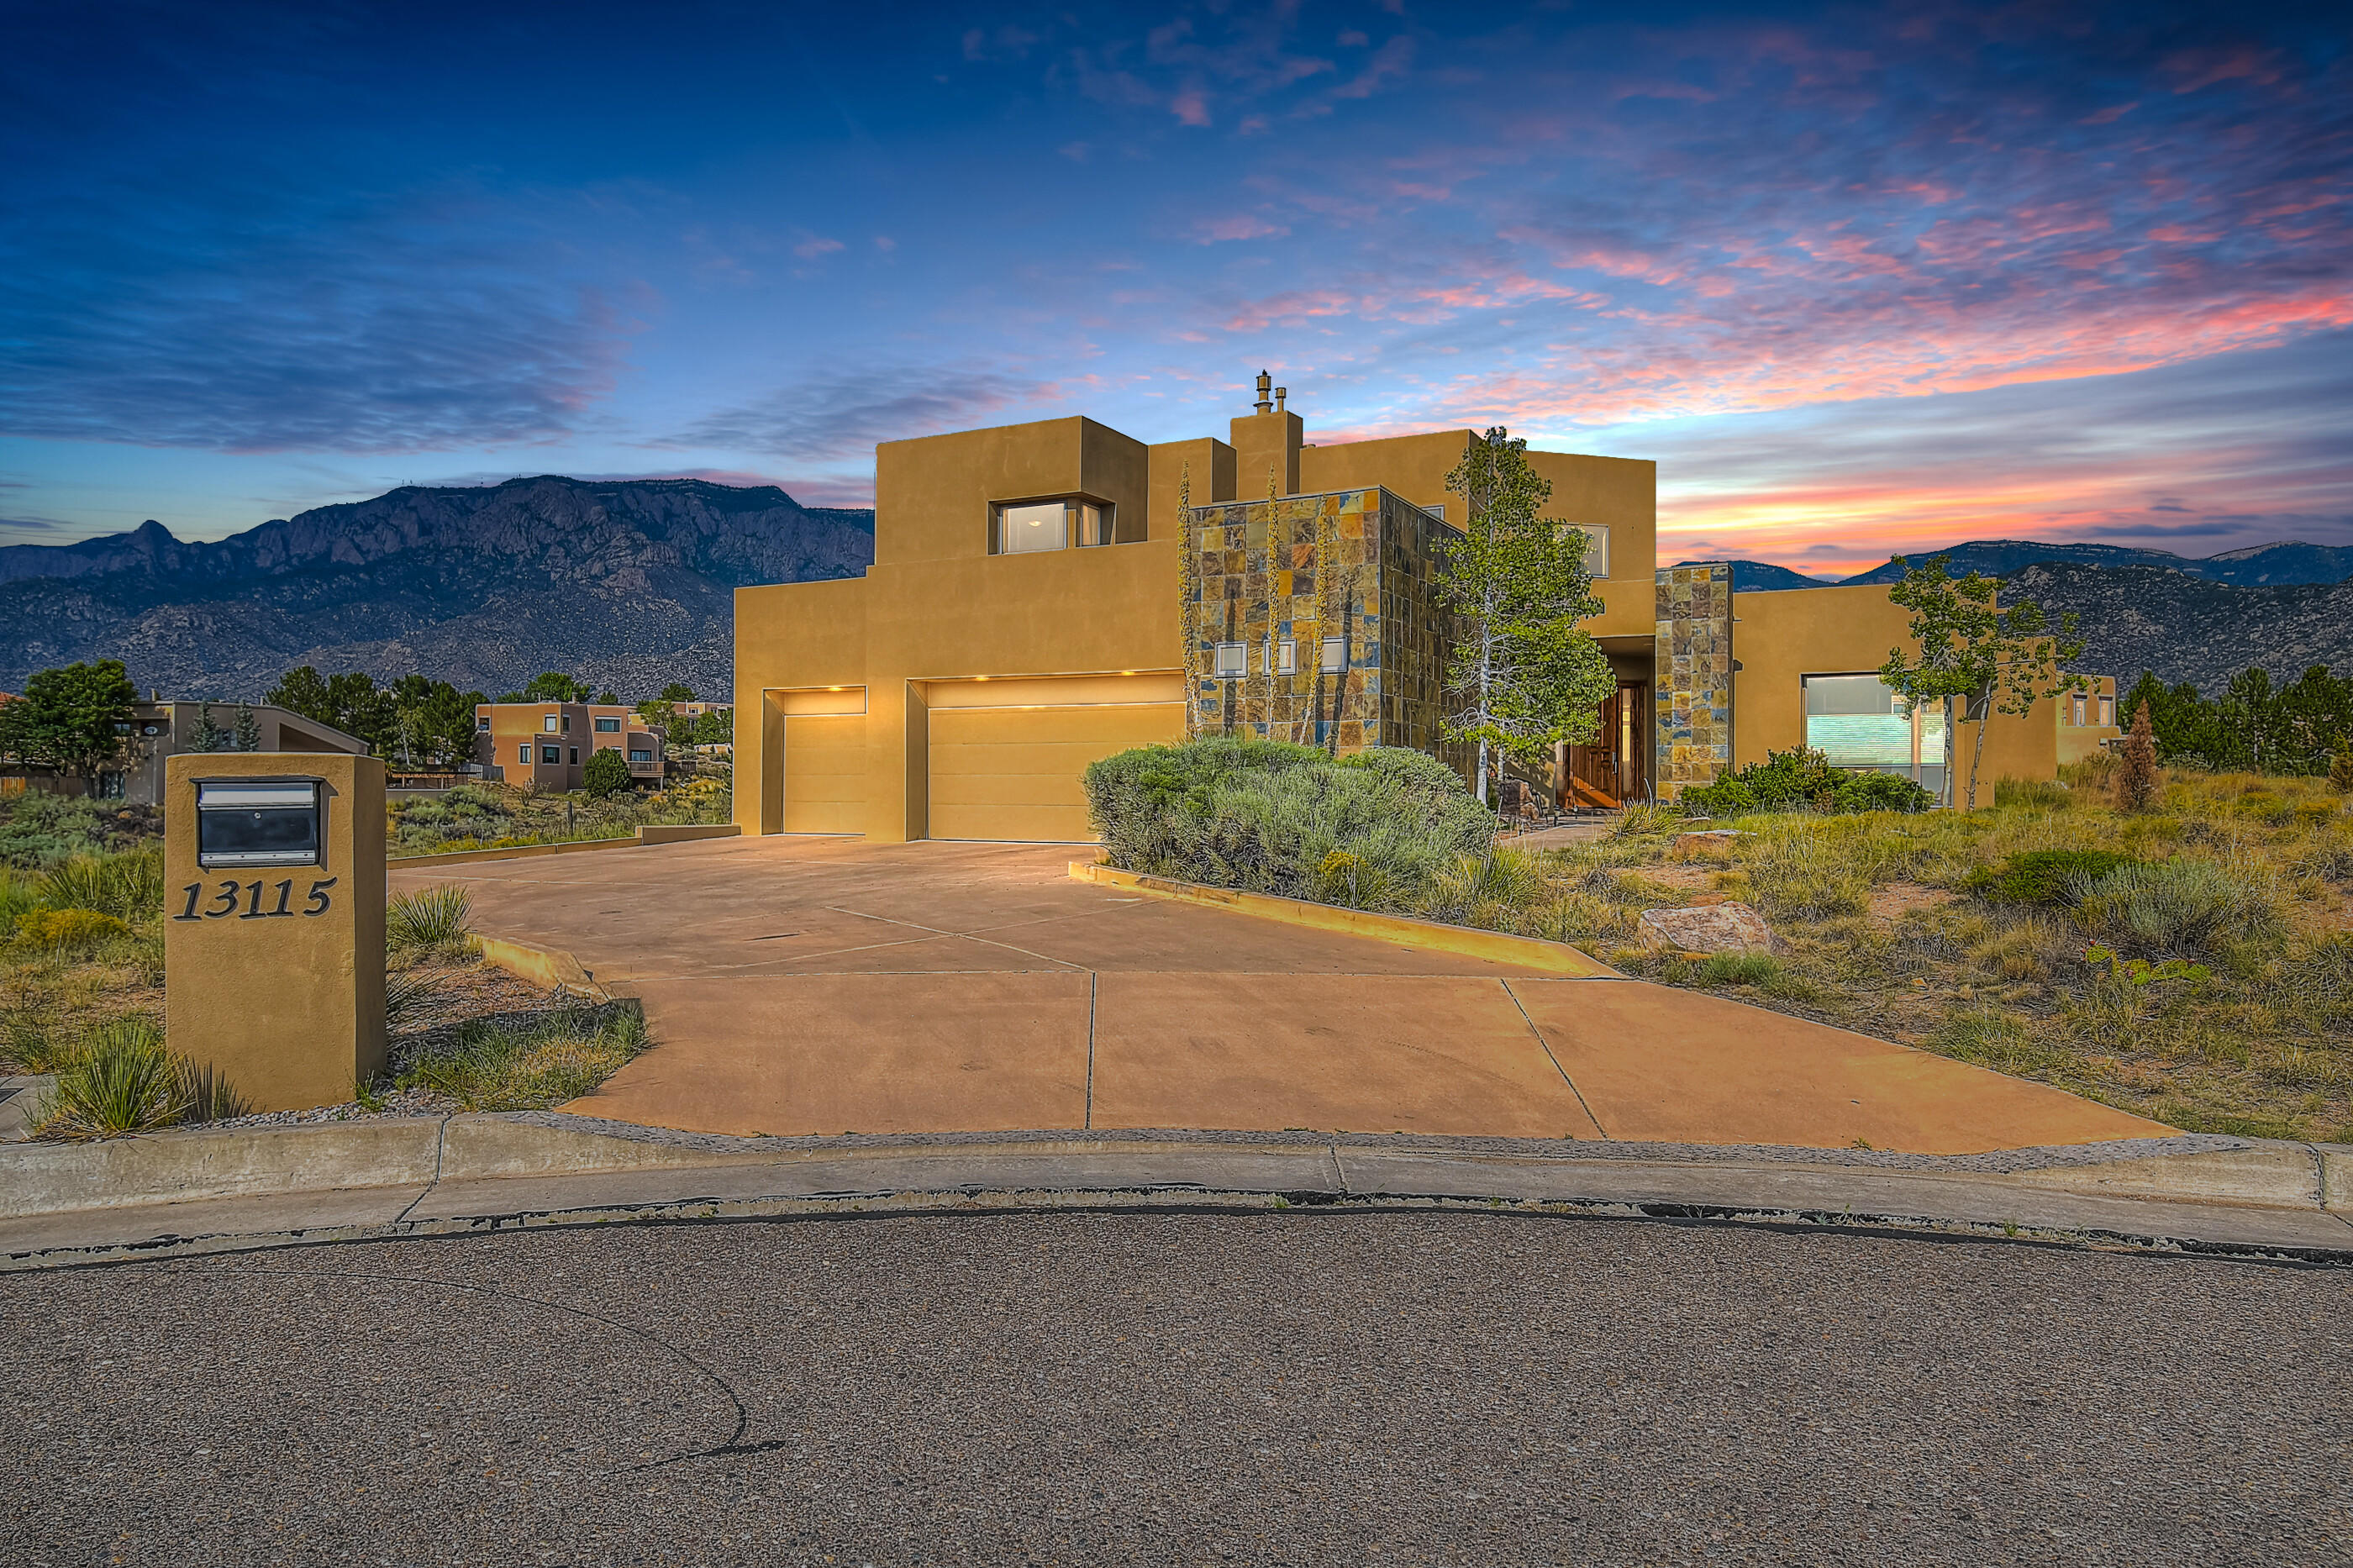 13115 SAND CHERRY Place NE Property Photo - Albuquerque, NM real estate listing